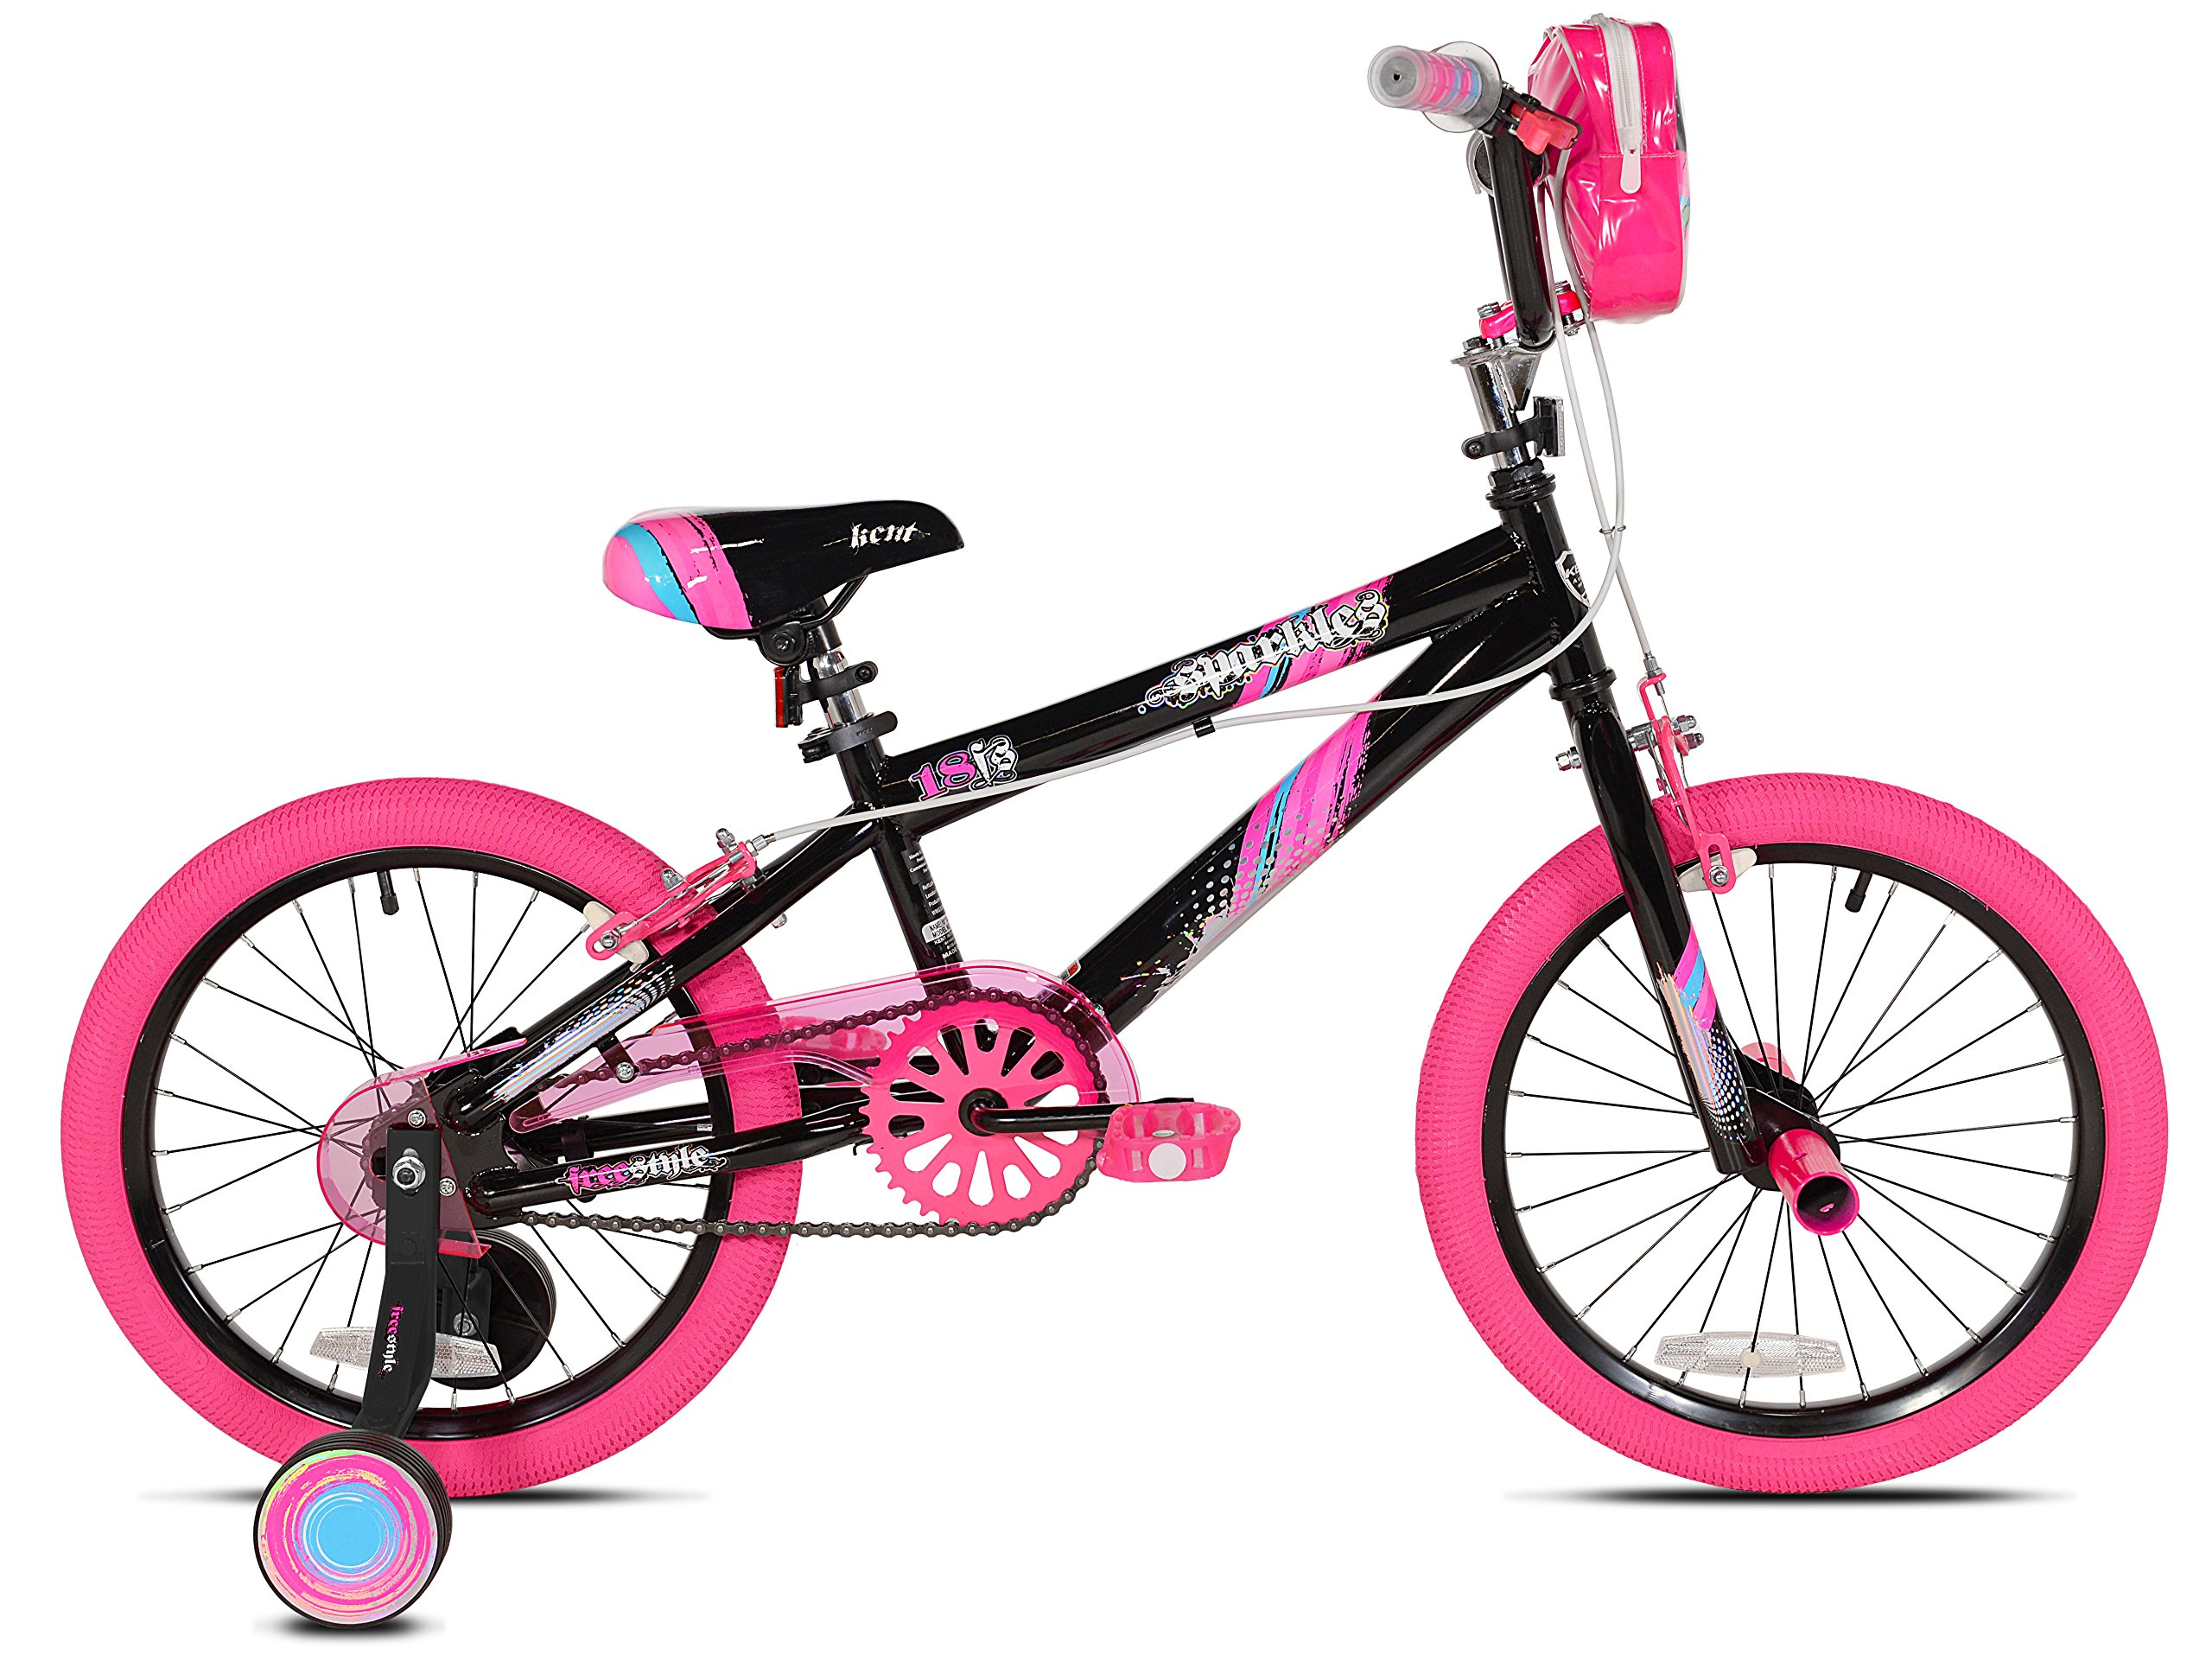 Kent 18'' Sparkles Girls Bike, Black/Pink Summer Toy Kids Outdoor Play by Kent 18'' Sparkles (Image #2)